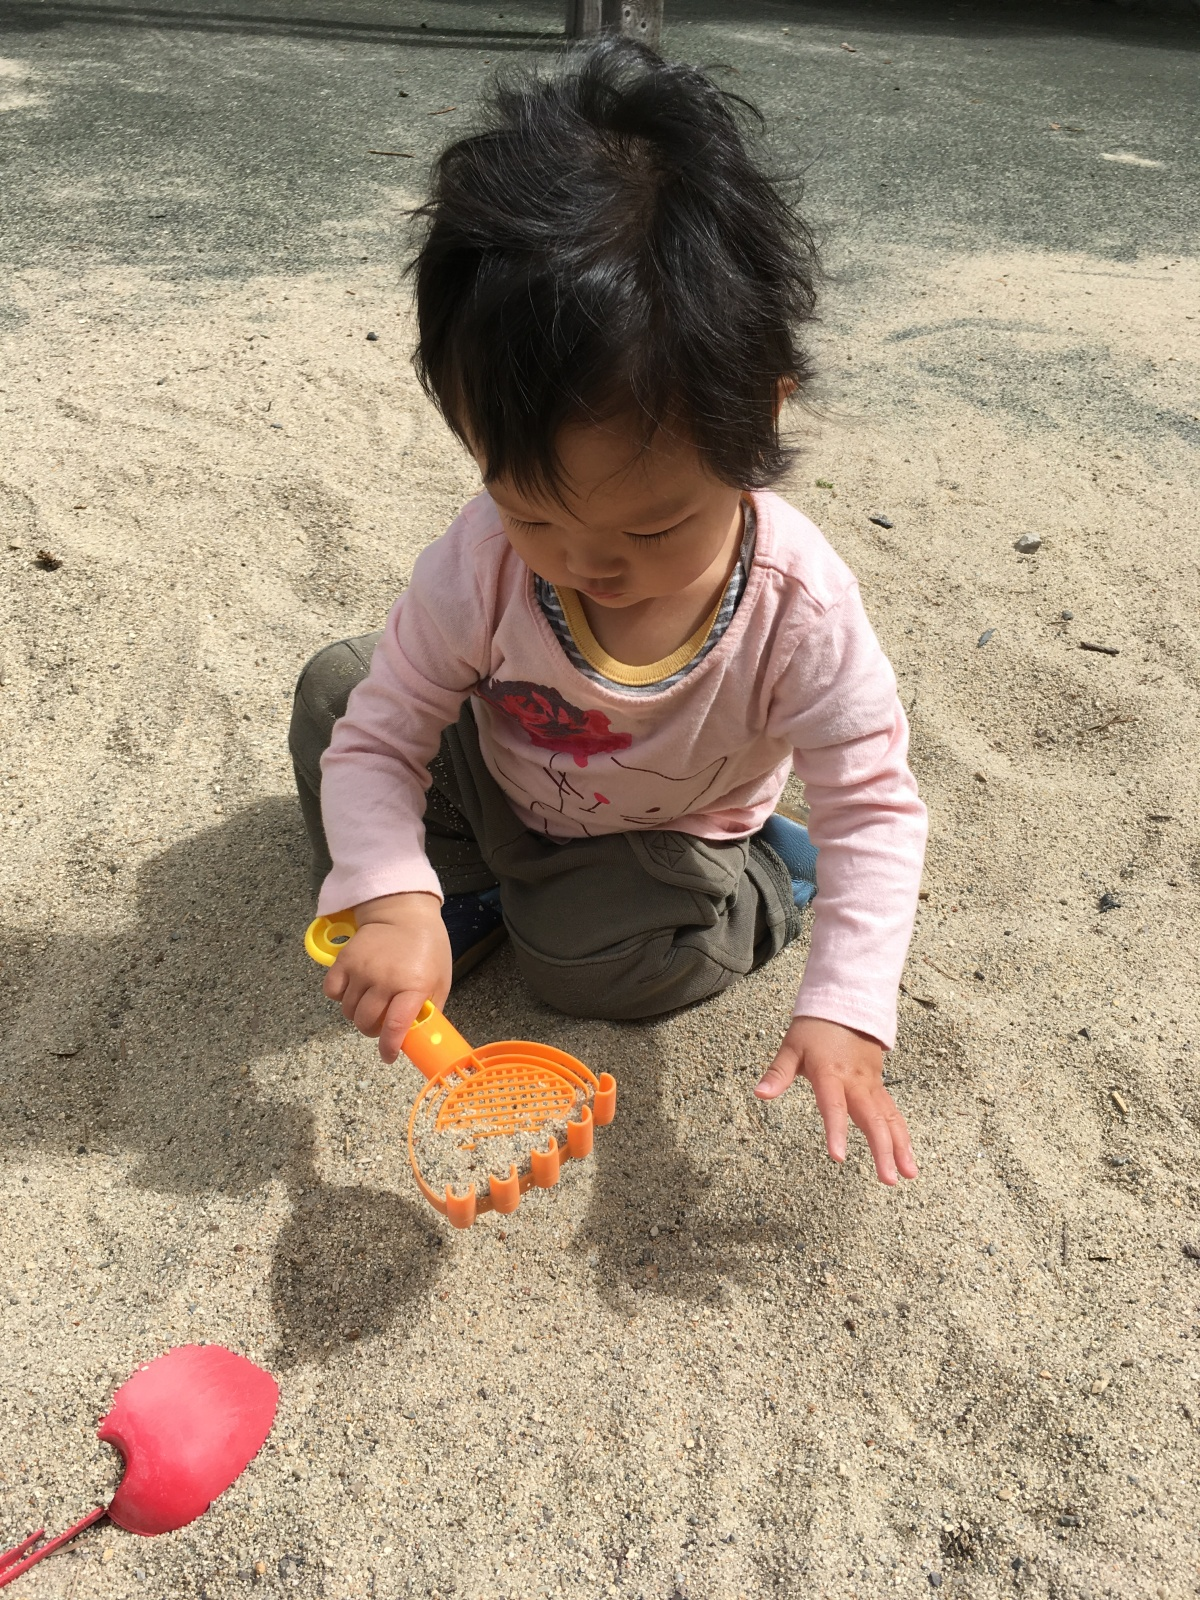 15-month-old Ada, wearing a pink shirt, plays in the sand with an orange rake